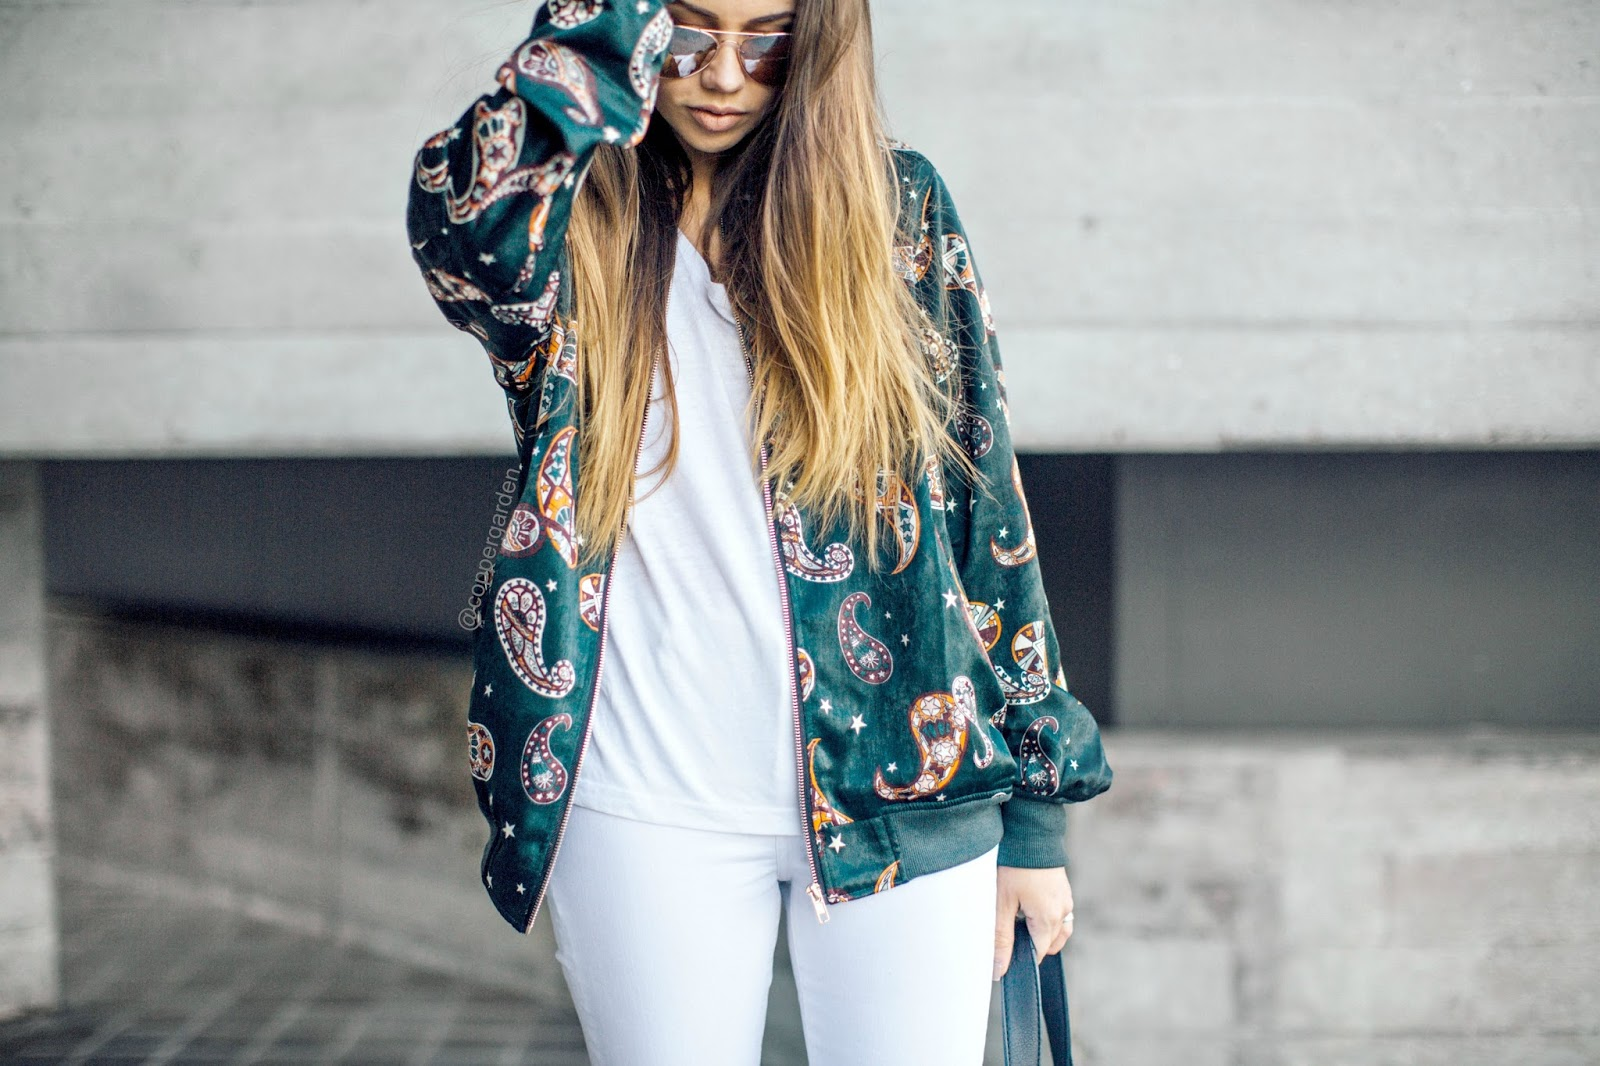 copper garden, fashion and lifestyle blogger, public desire lace up suede heels, paisley printed bomber jacket, festival style, summer 2016 outfit ideas, all white outfits,  outfit post